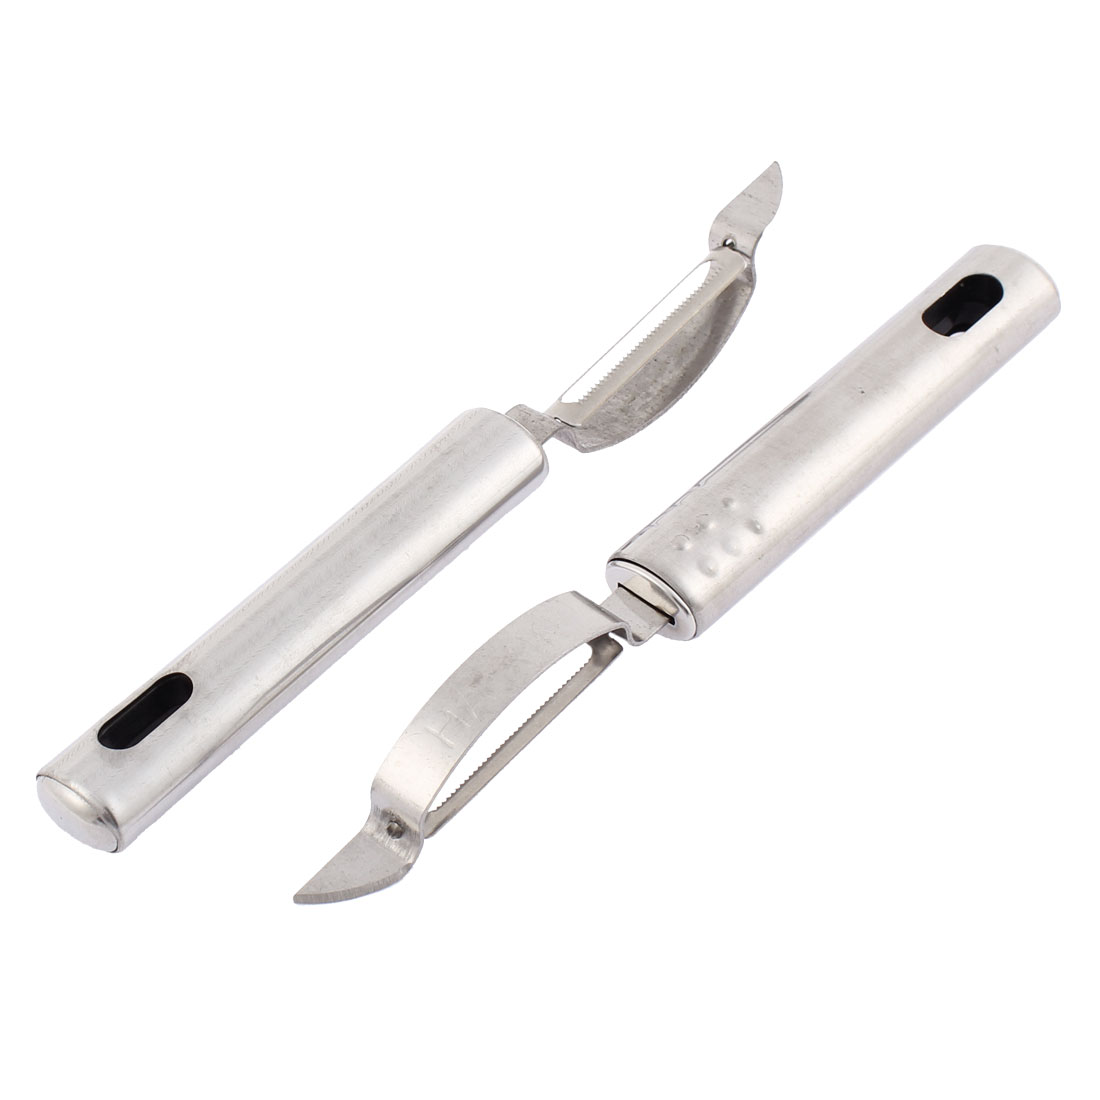 Kitchen Fruit Vegetable Peeler Cutter 19cm Length 2PCS